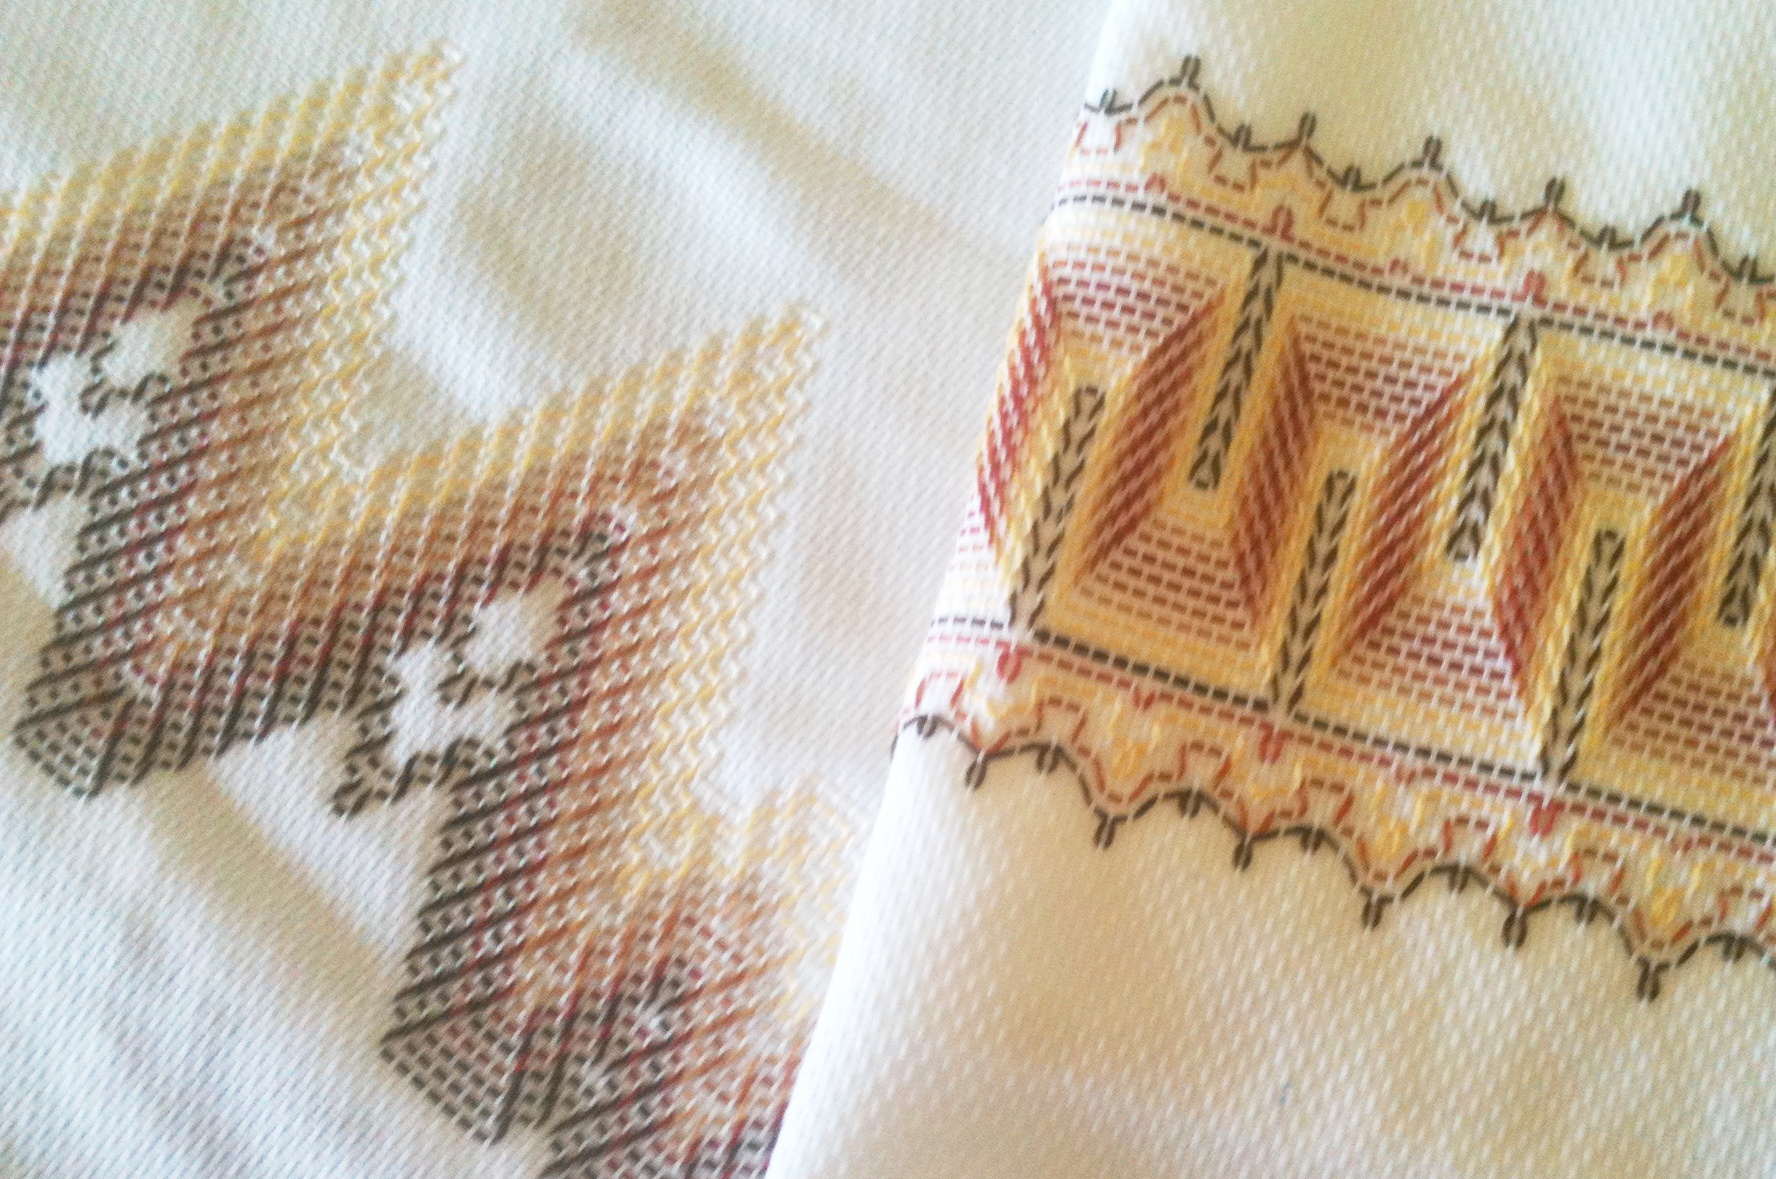 Huck Embroidery Patterns Free Stash Couture Huck Towels The Destashification Project